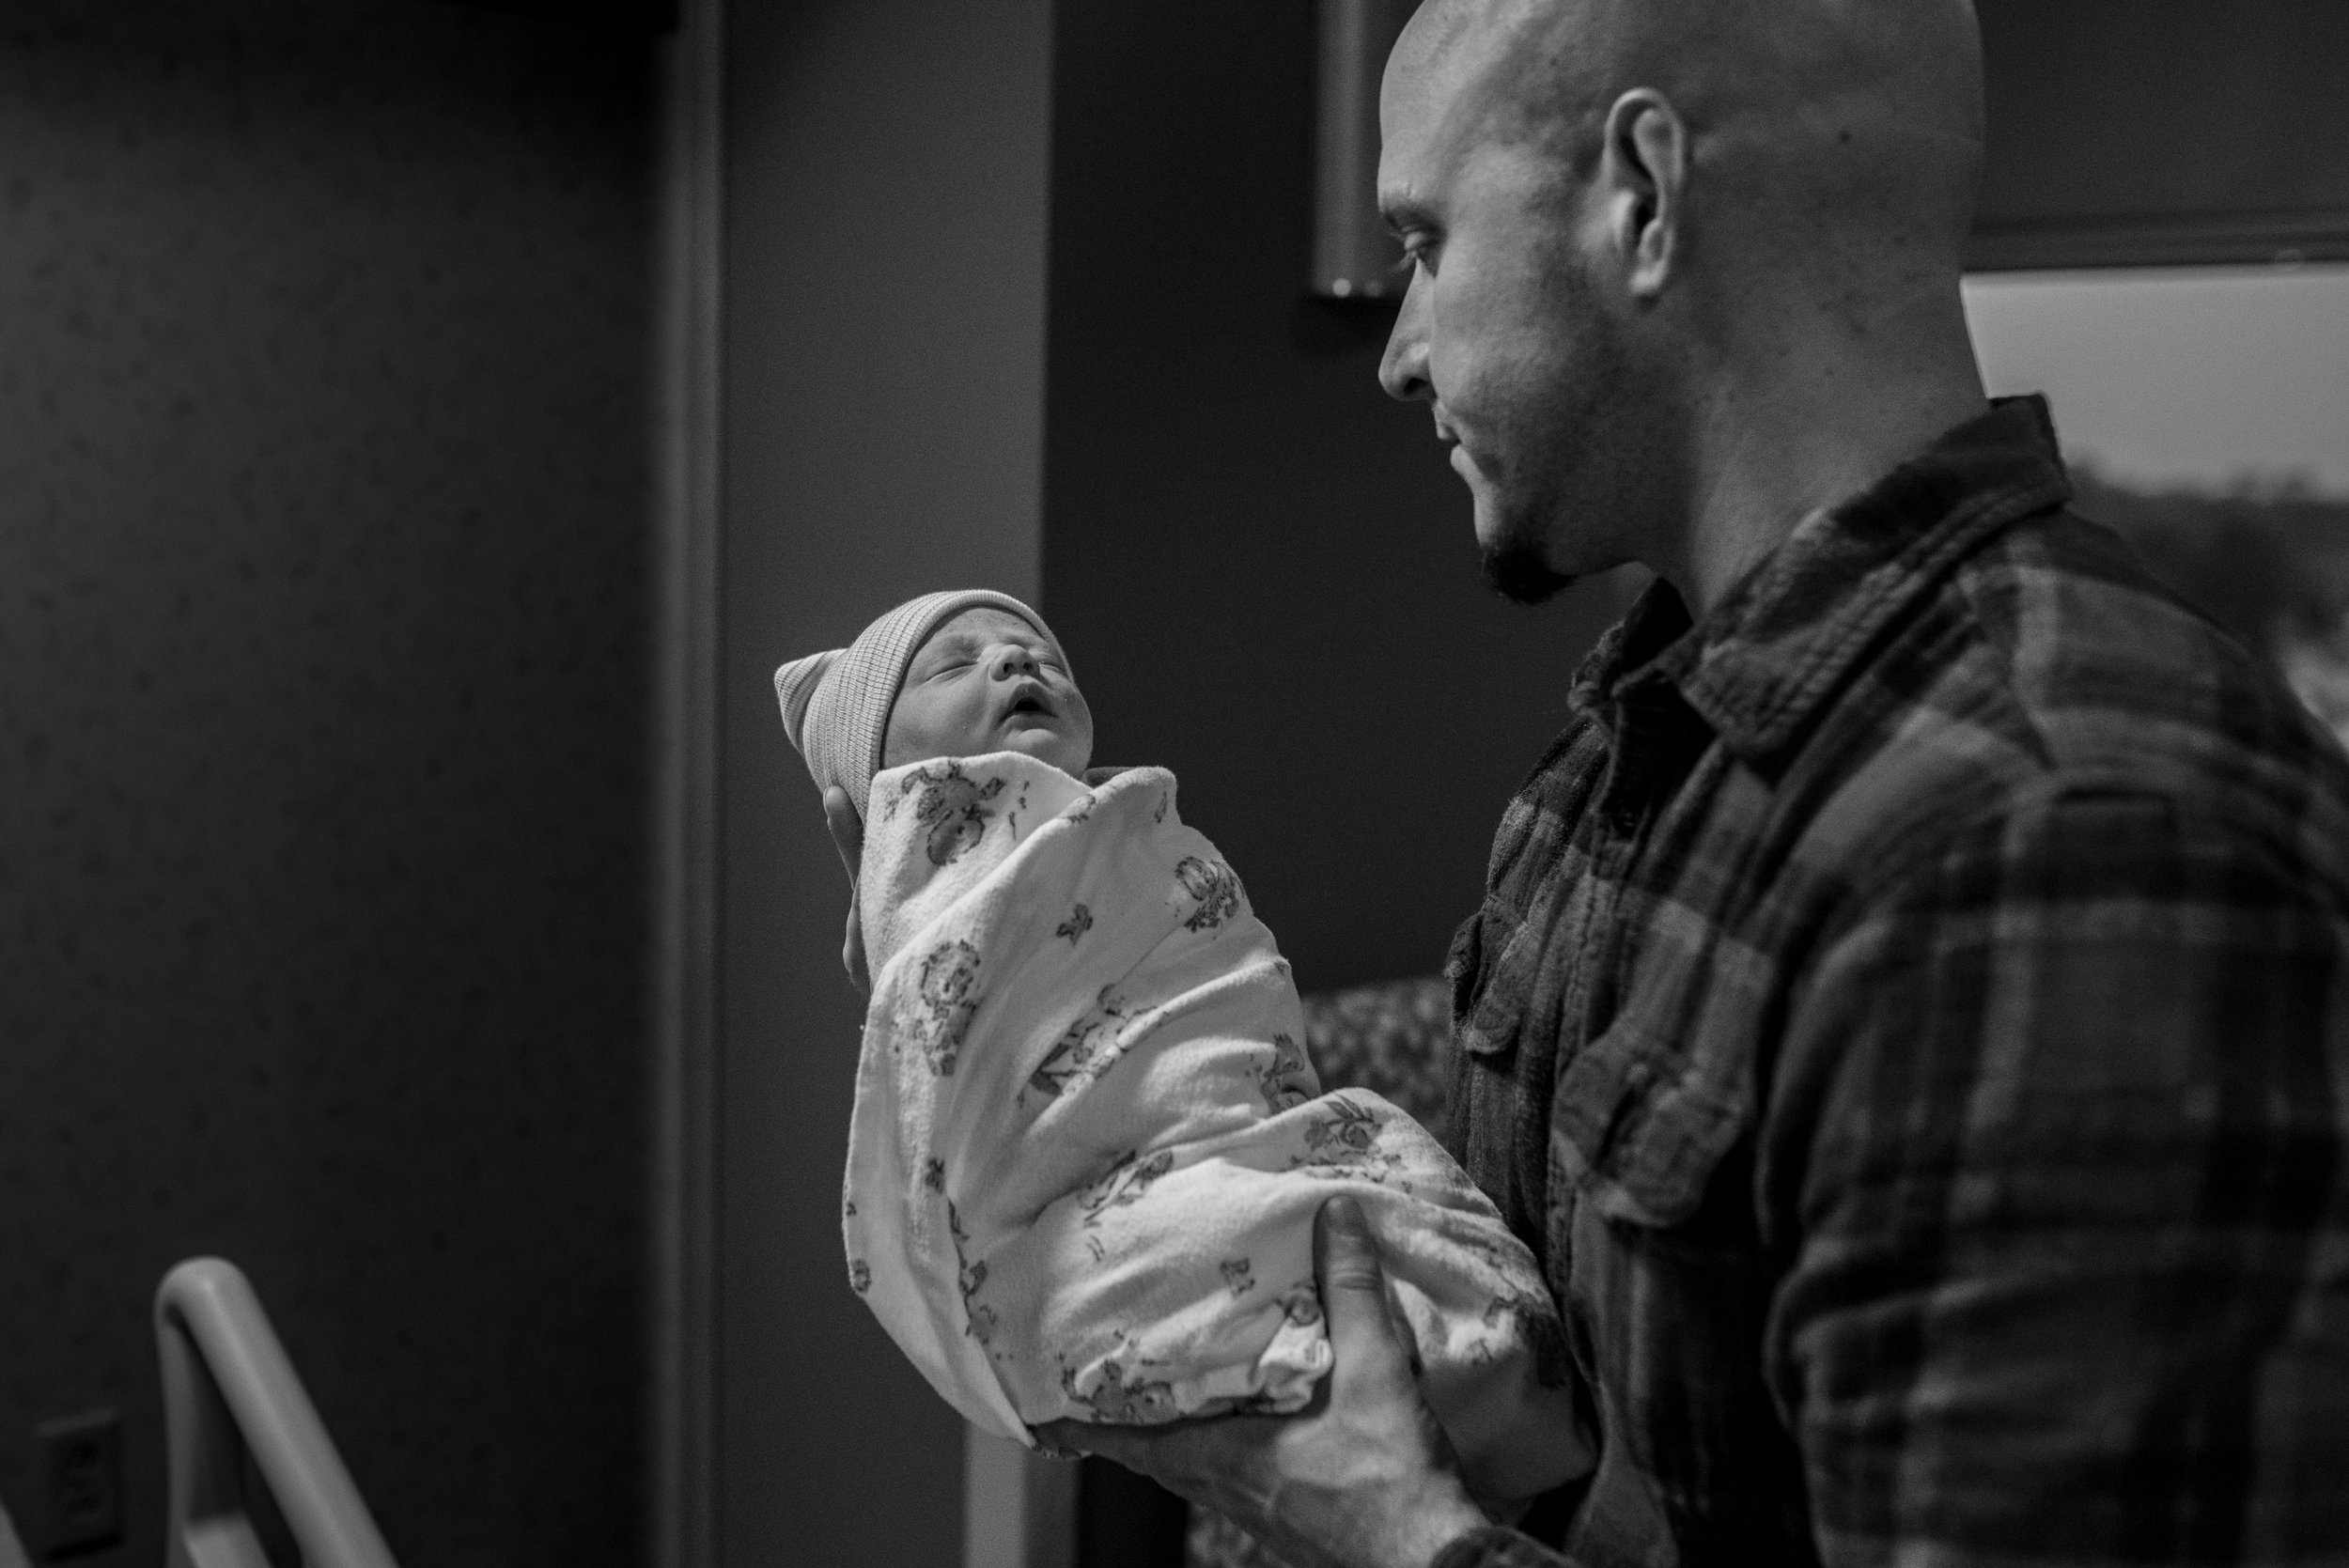 Dad holding newborn baby swaddled in a blanket in the hospital during milwaukee Fresh 48 session